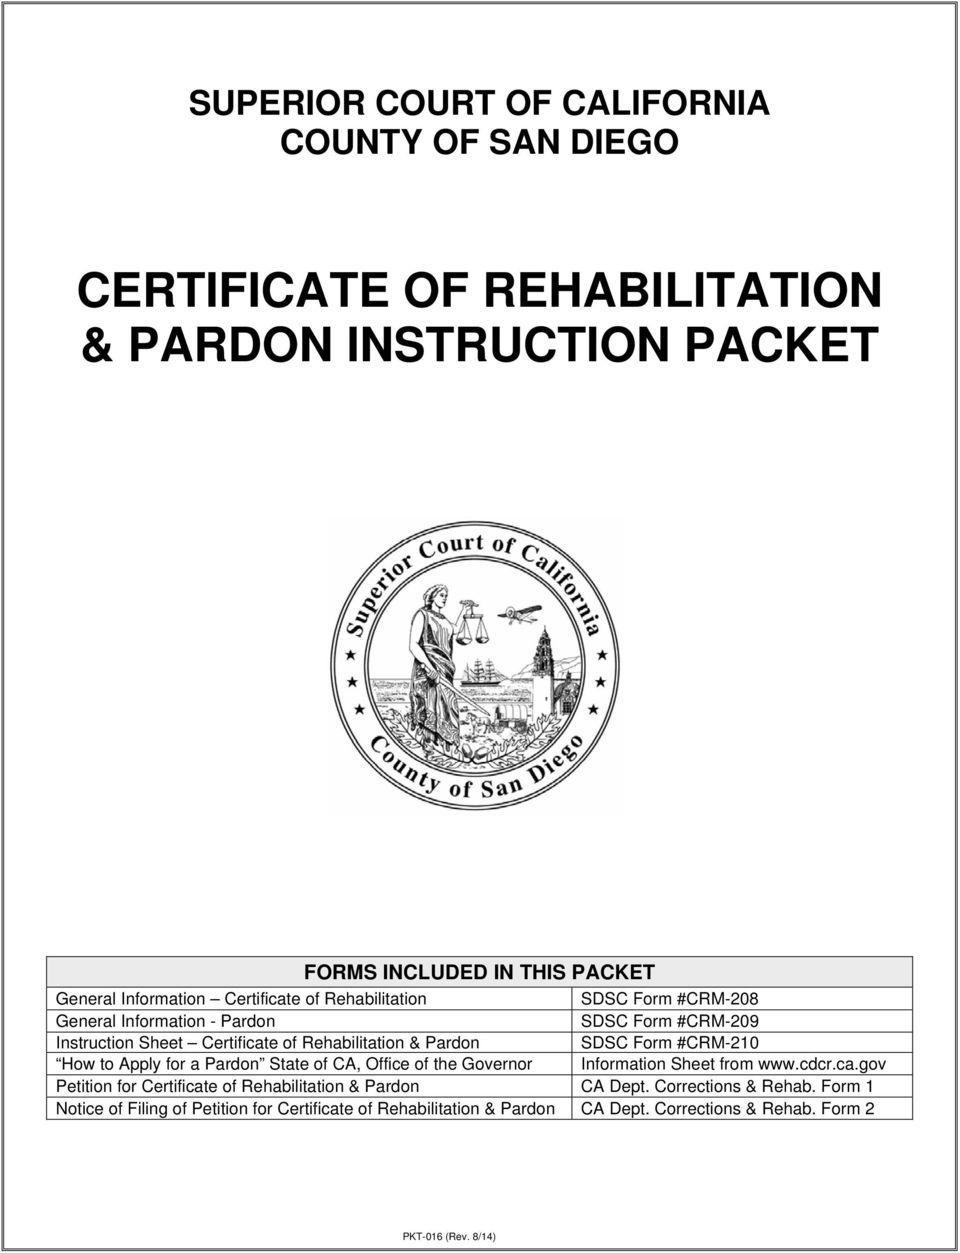 Form #CRM-210 How to Apply for a Pardon State of CA, Office of the Governor Information Sheet from www.cdcr.ca.